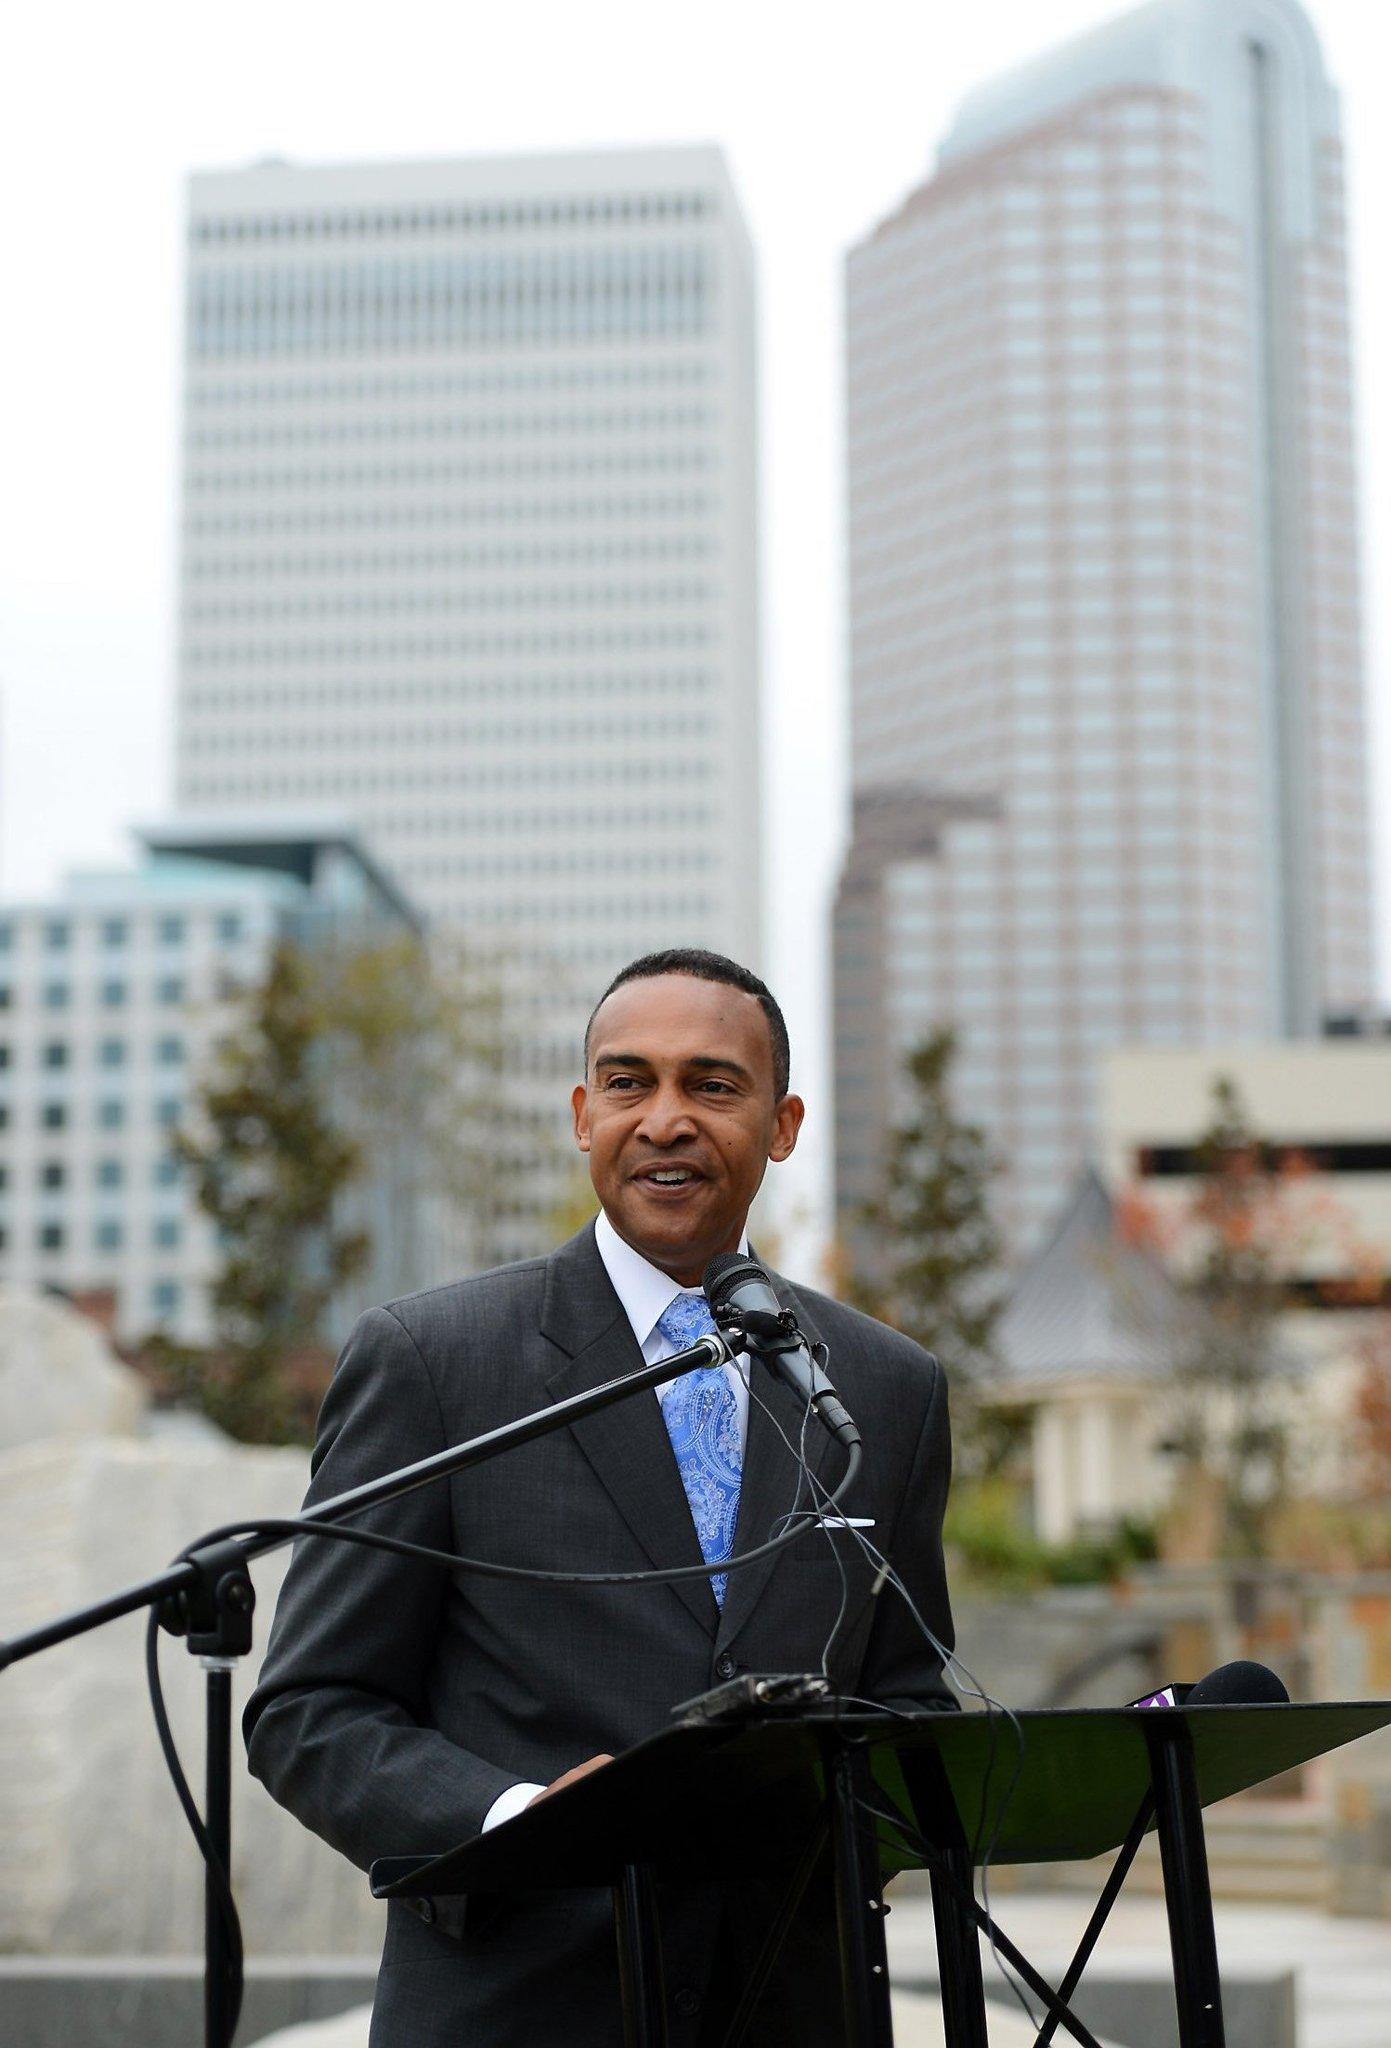 Charlotte Mayor Patrick D. Cannon Charlotte Mayor Patrick Cannon, 47, is charged with theft and bribery in connection with programs receiving federal funds, wire fraud, and extortion.